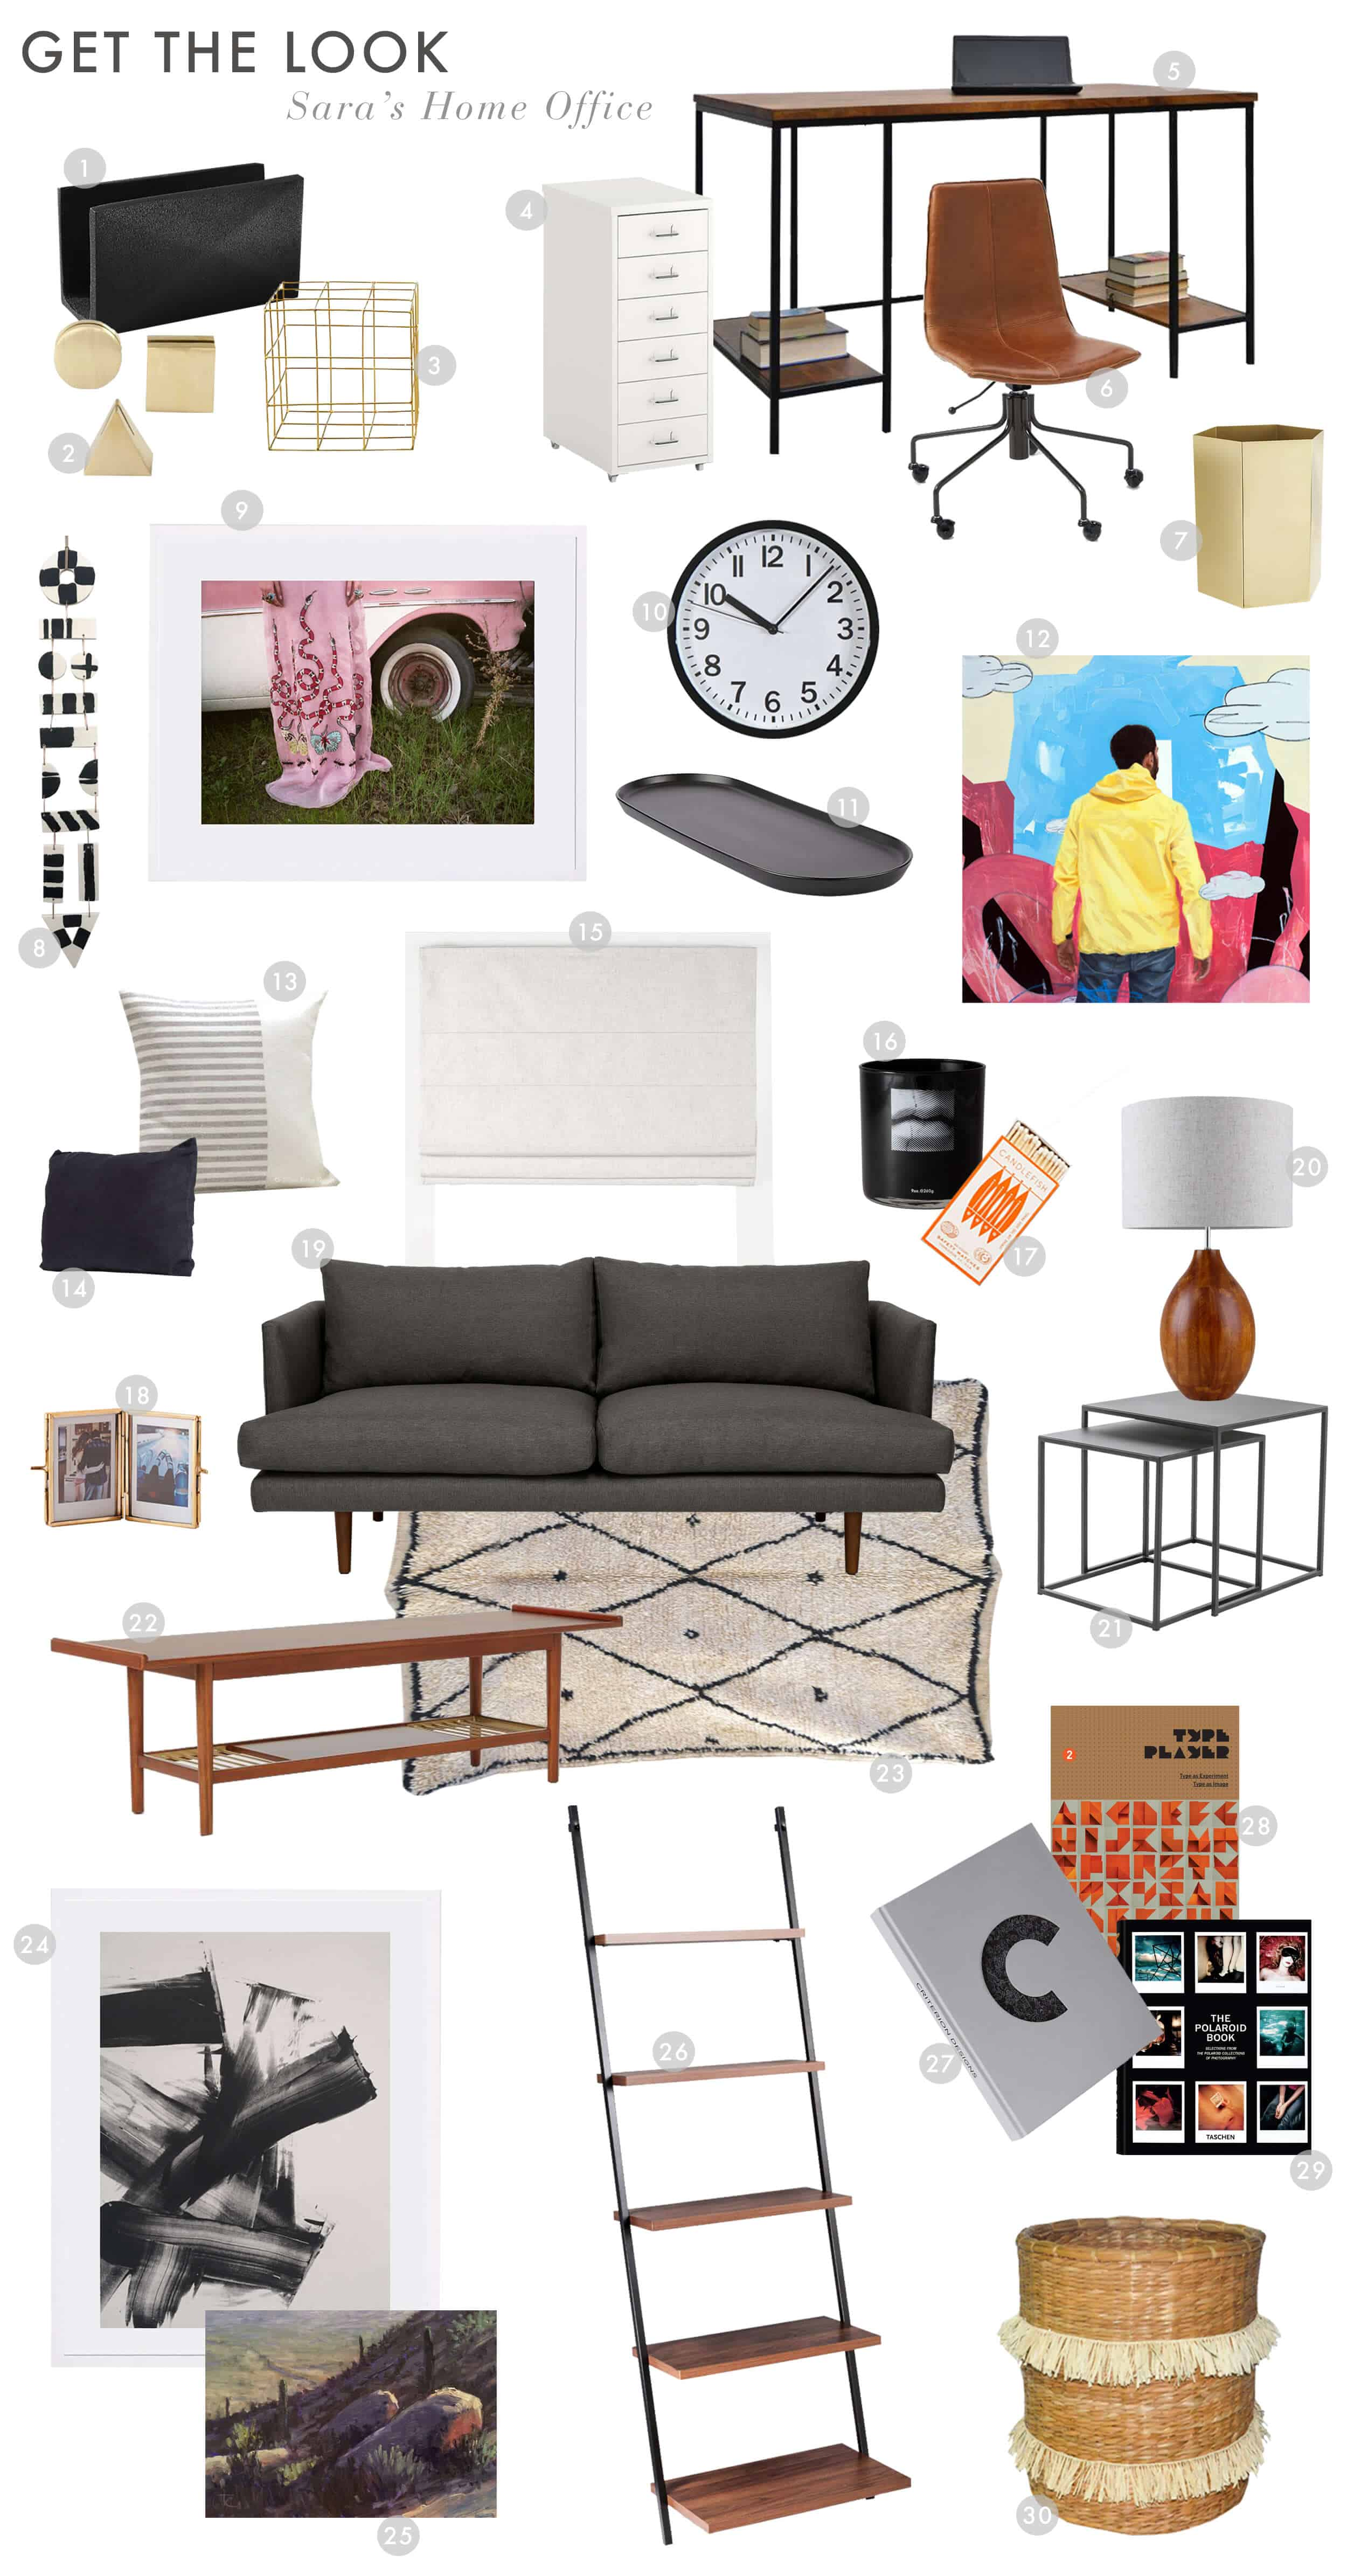 Emily-Henderson_Sara_MOTO_Home-Office_Modern_Eclectic_Neutral_Get-the-Look